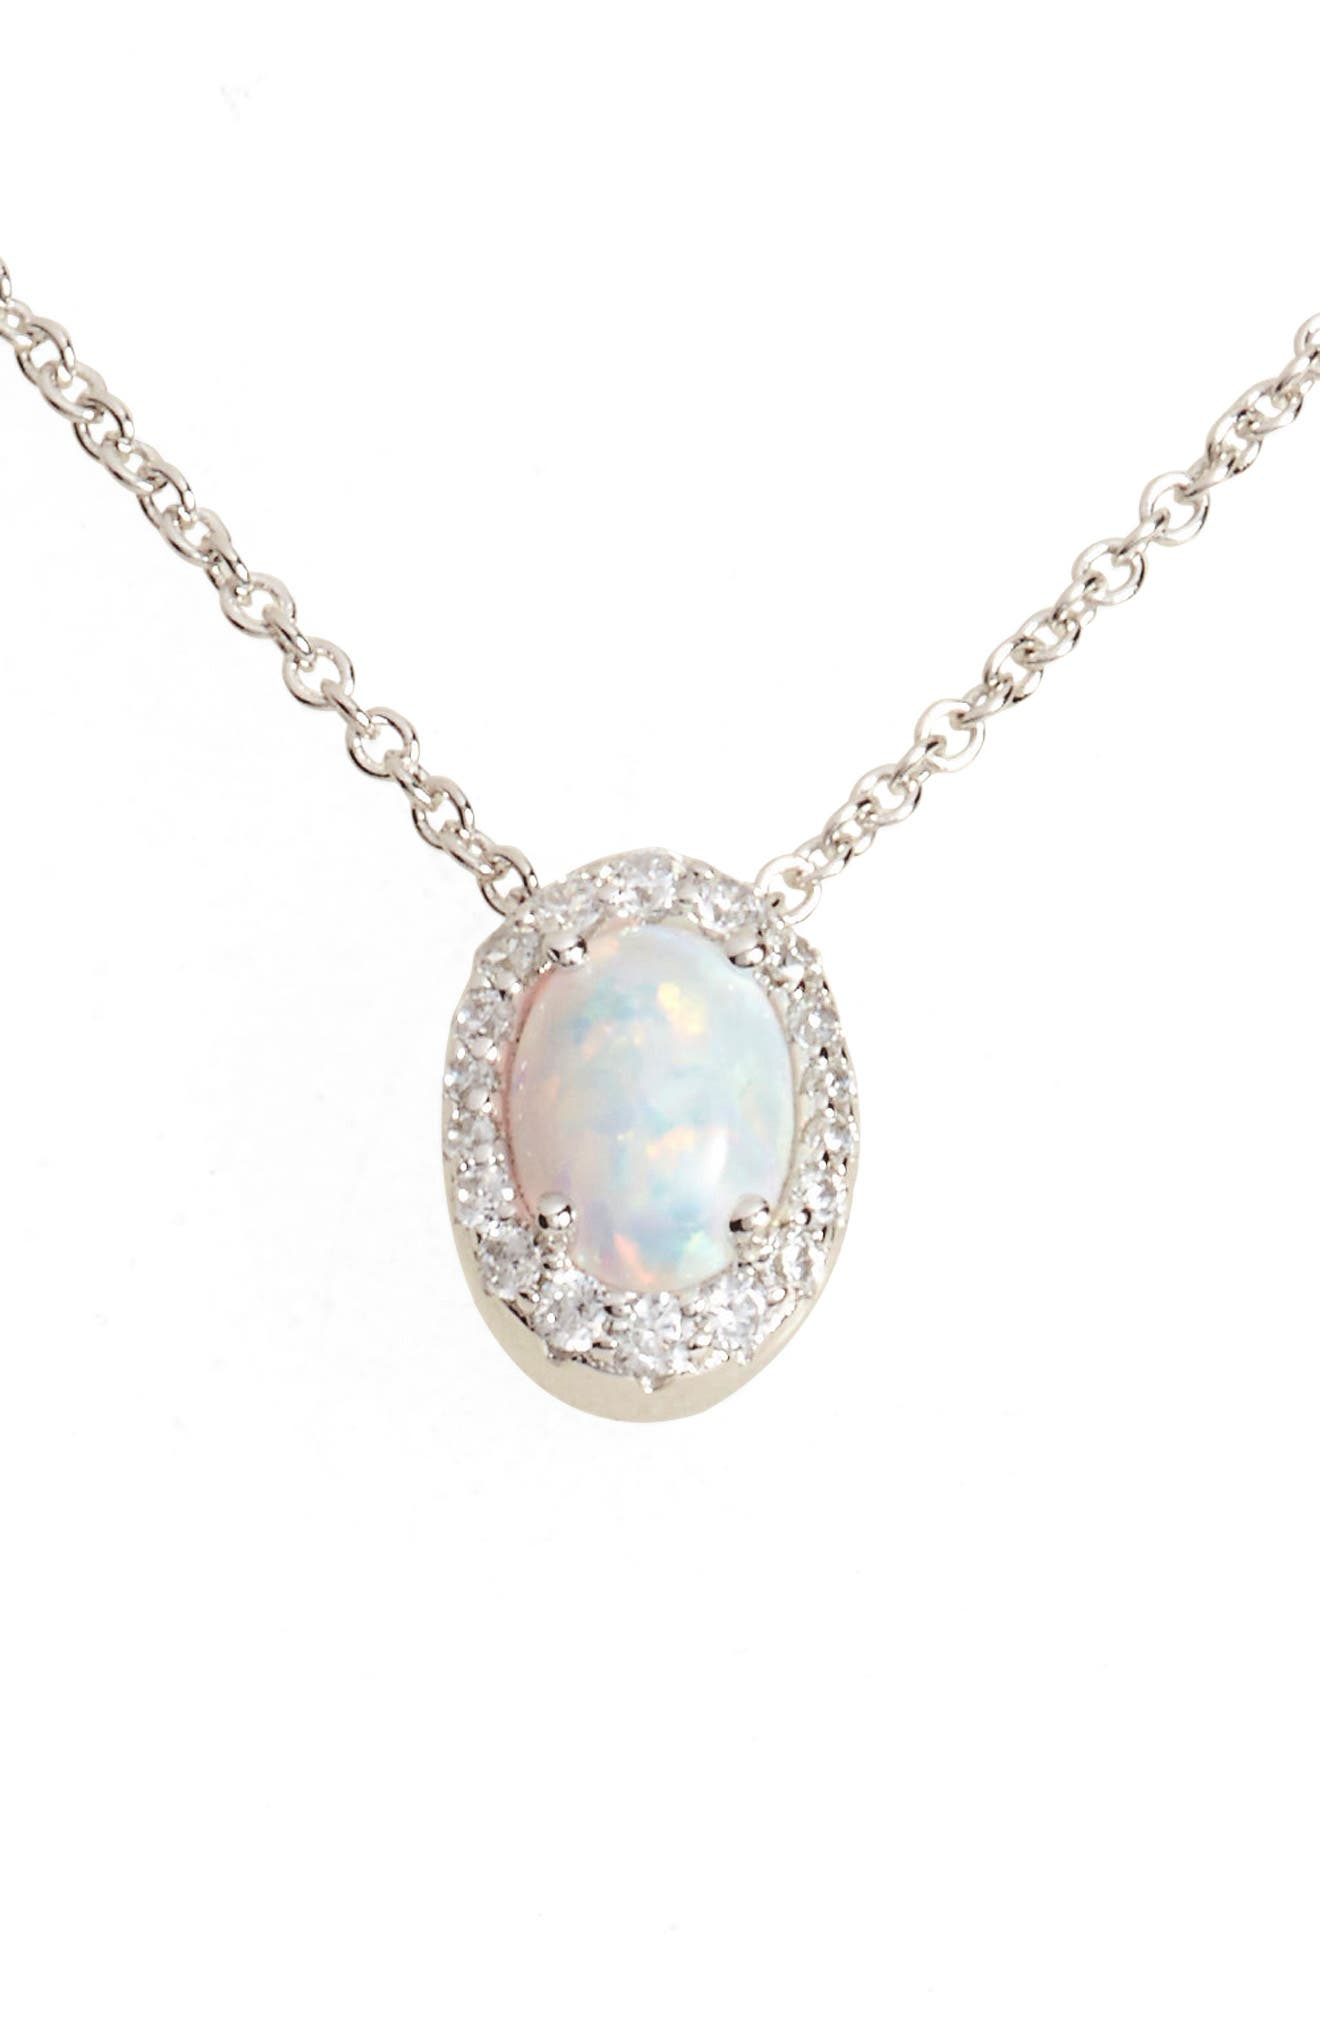 Simulated Opal Halo Pendant Necklace,                         Main,                         color, SILVER/ OPAL/ CLEAR